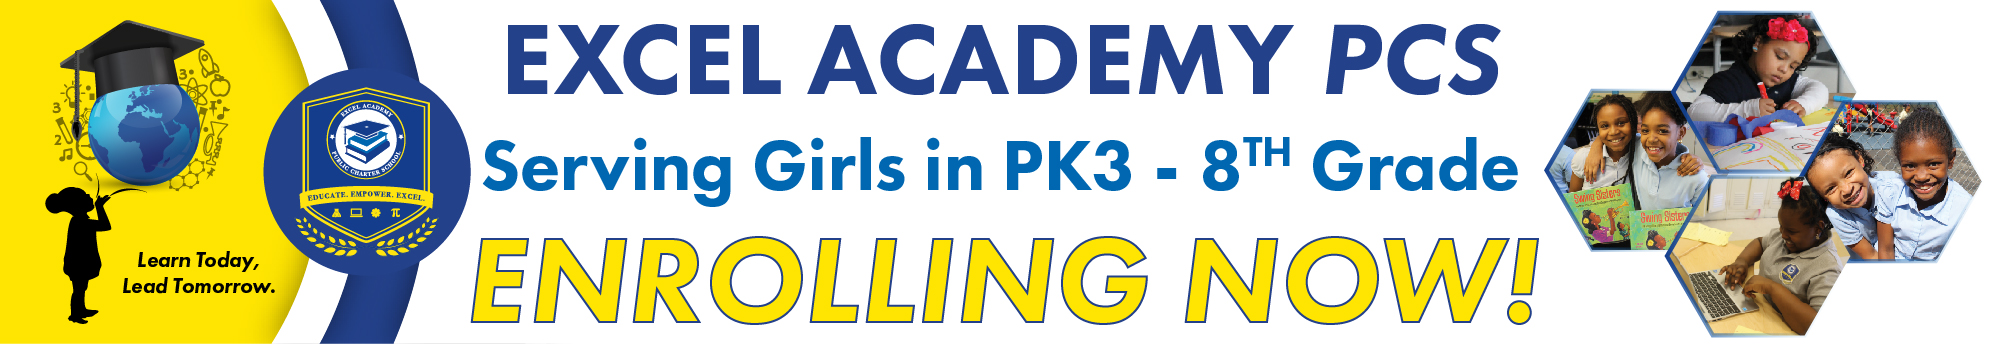 Excel Academy: Washington's First Public Charter School for Girls